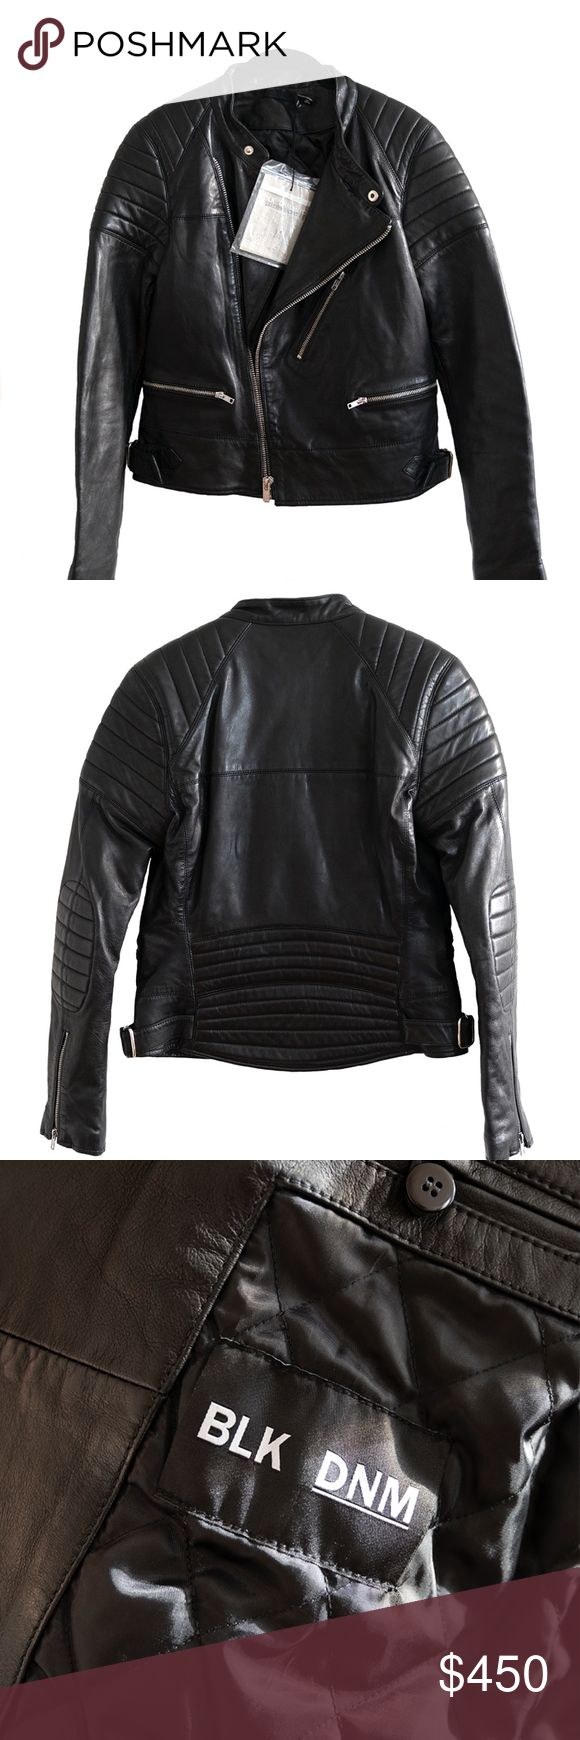 """BLK DNM Women Leather Jacket 22 Black Denim Racing Inspired Biker Jacket. Padding details at shoulders, elbows, and back panel. Buckles at side waist. Two zip pockets at waist and one at chest. Tailored viscose""""interior"""" with pockets. Silver hardware.   Brand new with tags and extra buttons. Size M. Black Denim Jackets & Coats"""